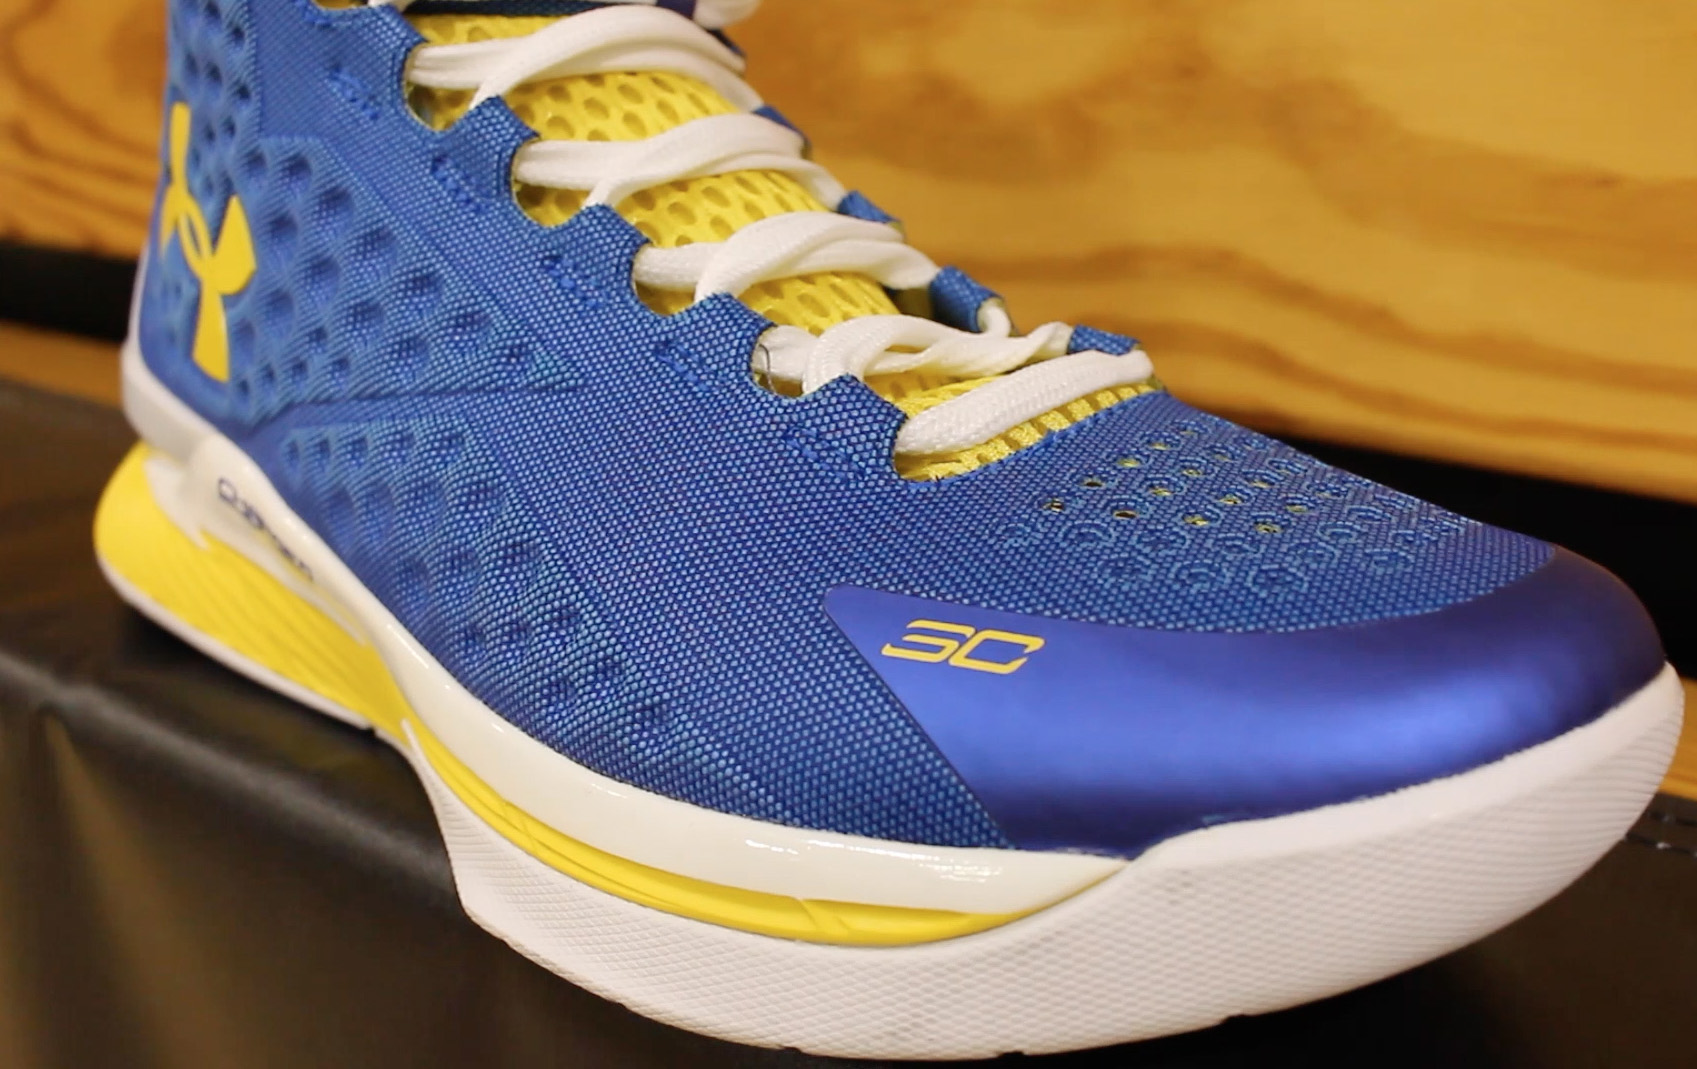 Stephen Curry Shoes Curry 3 Shoes SA Under Armour